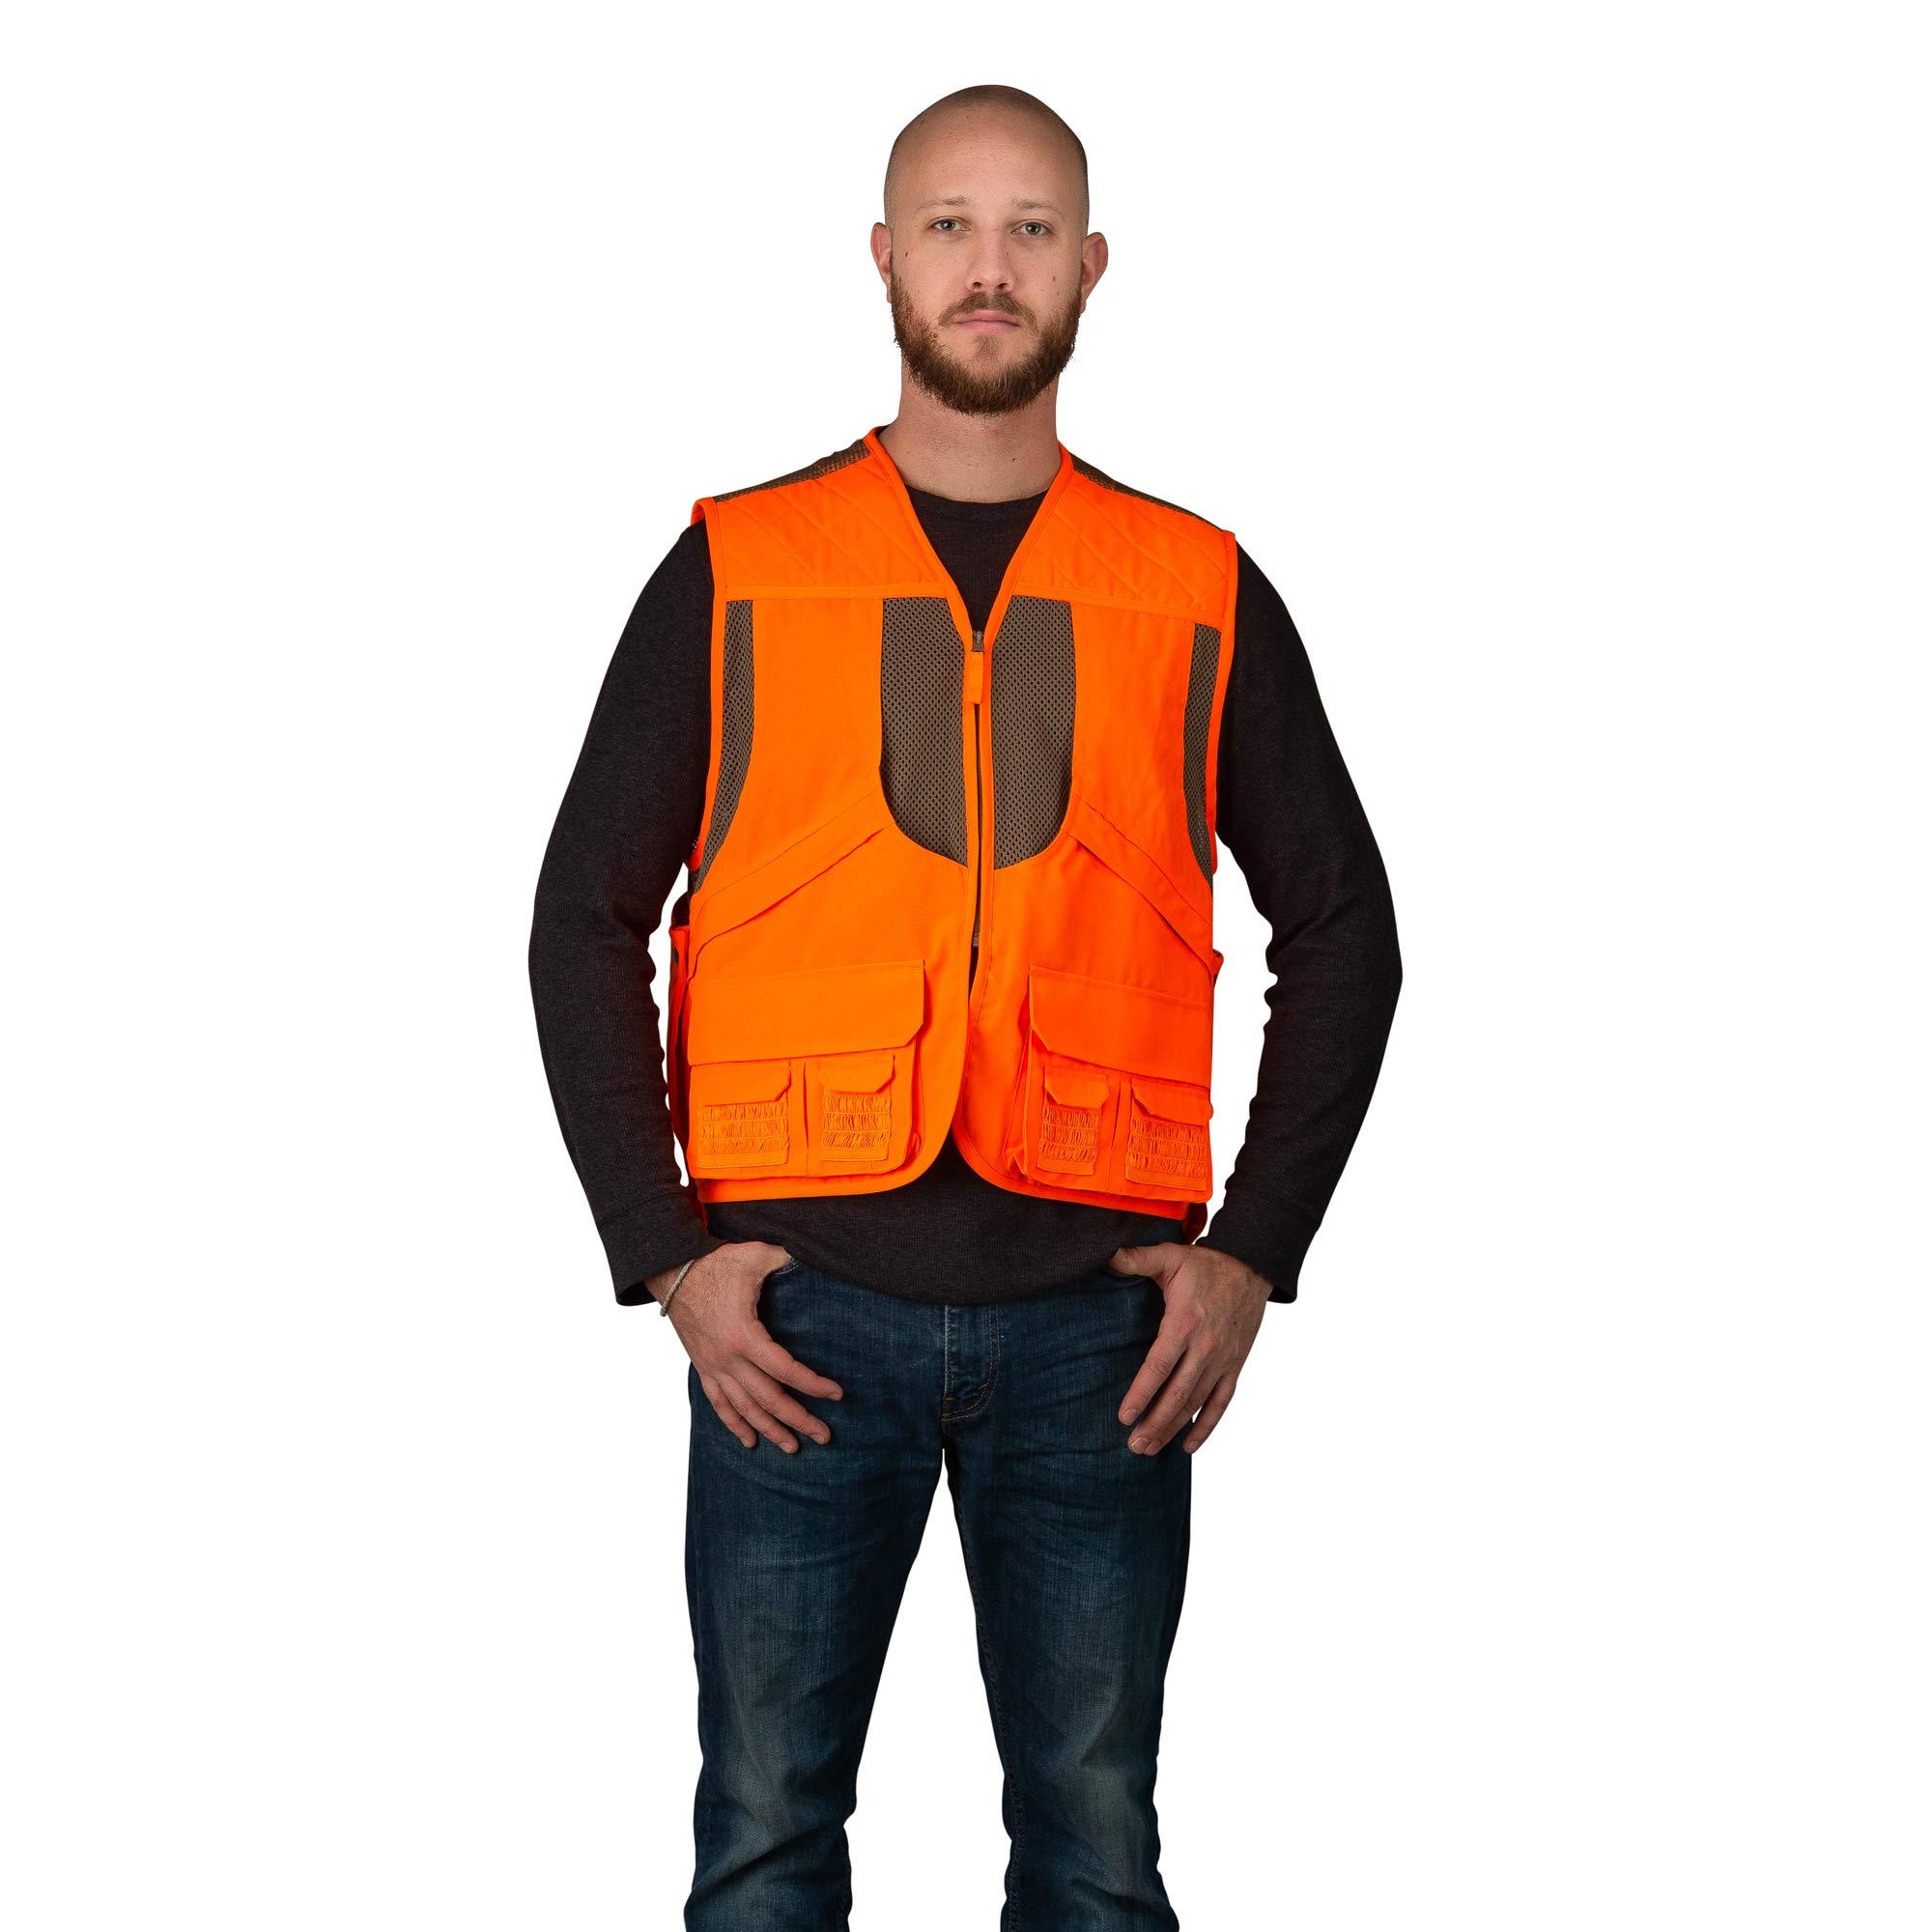 TrailCrest Mens Blaze Orange Safety Deluxe Front Loader Vest, 3X by TrailCrest (Image #5)